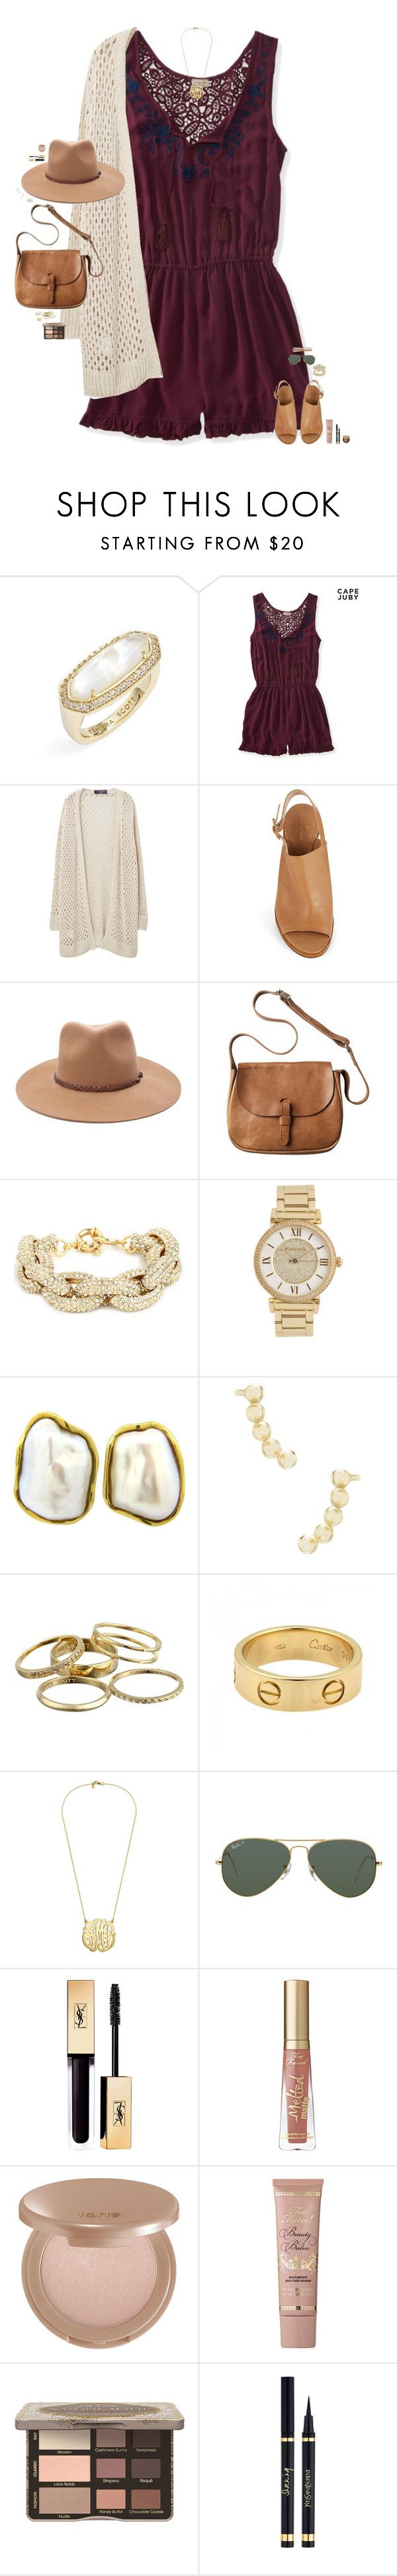 """""""I don't know how to talk to you. I just know I found myself getting lost with you."""" by maggie-prep ❤ liked on Polyvore featuring Kendra Scott, Aéropostale, Violeta by Mango, Kate Spade, Forever 21, Toast, Michael Kors, Tiffany & Co., Cartier and Ray-Ban"""